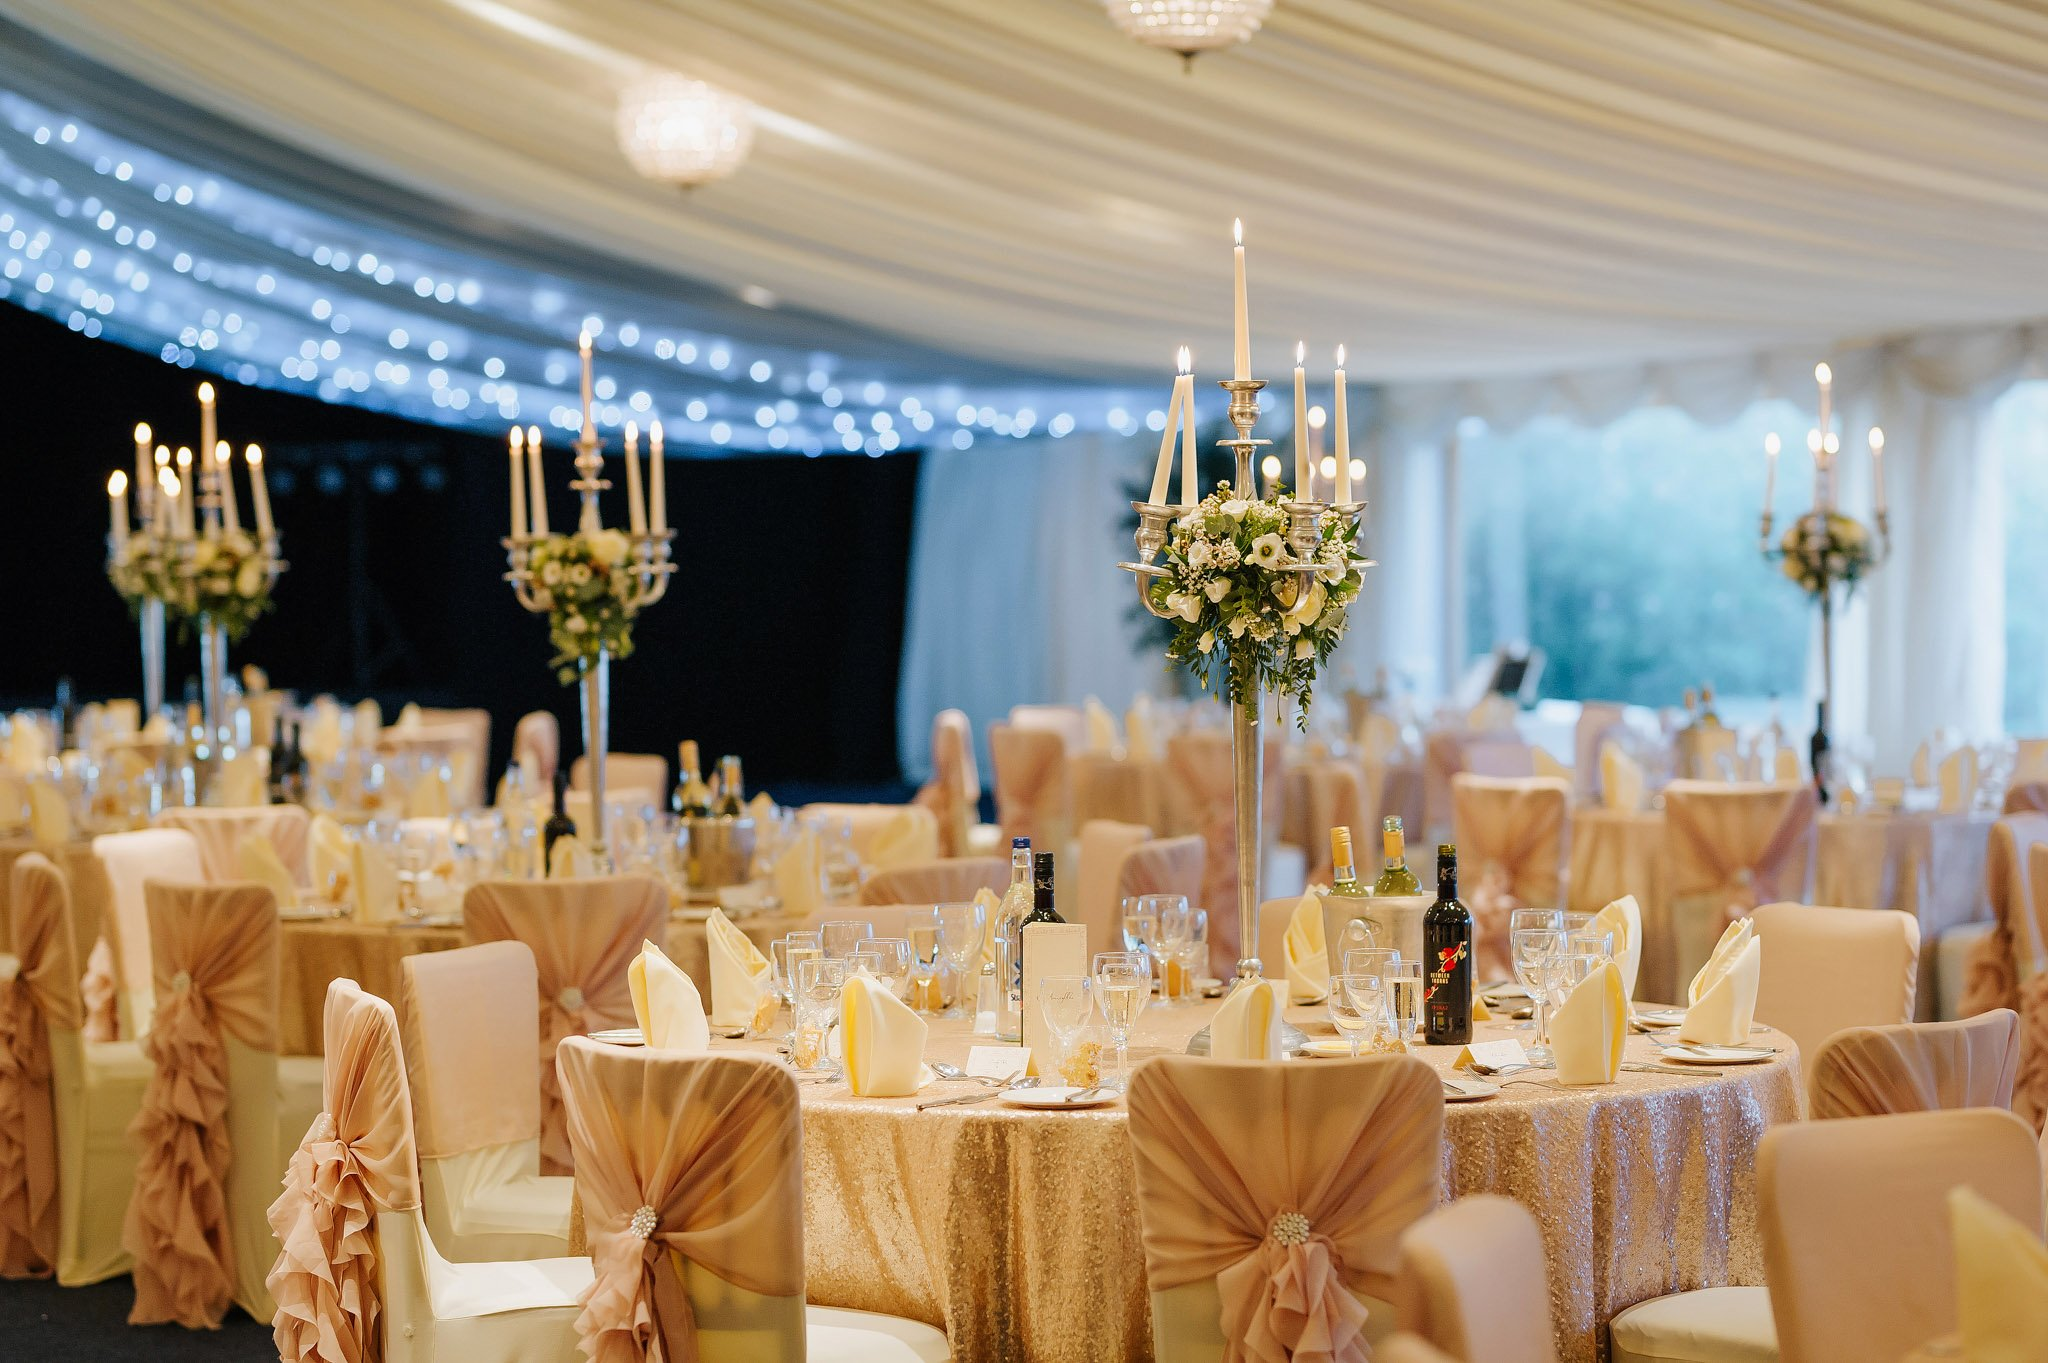 Coombe Abbey wedding in Coventry, Warwickshire - Sam + Matt 56